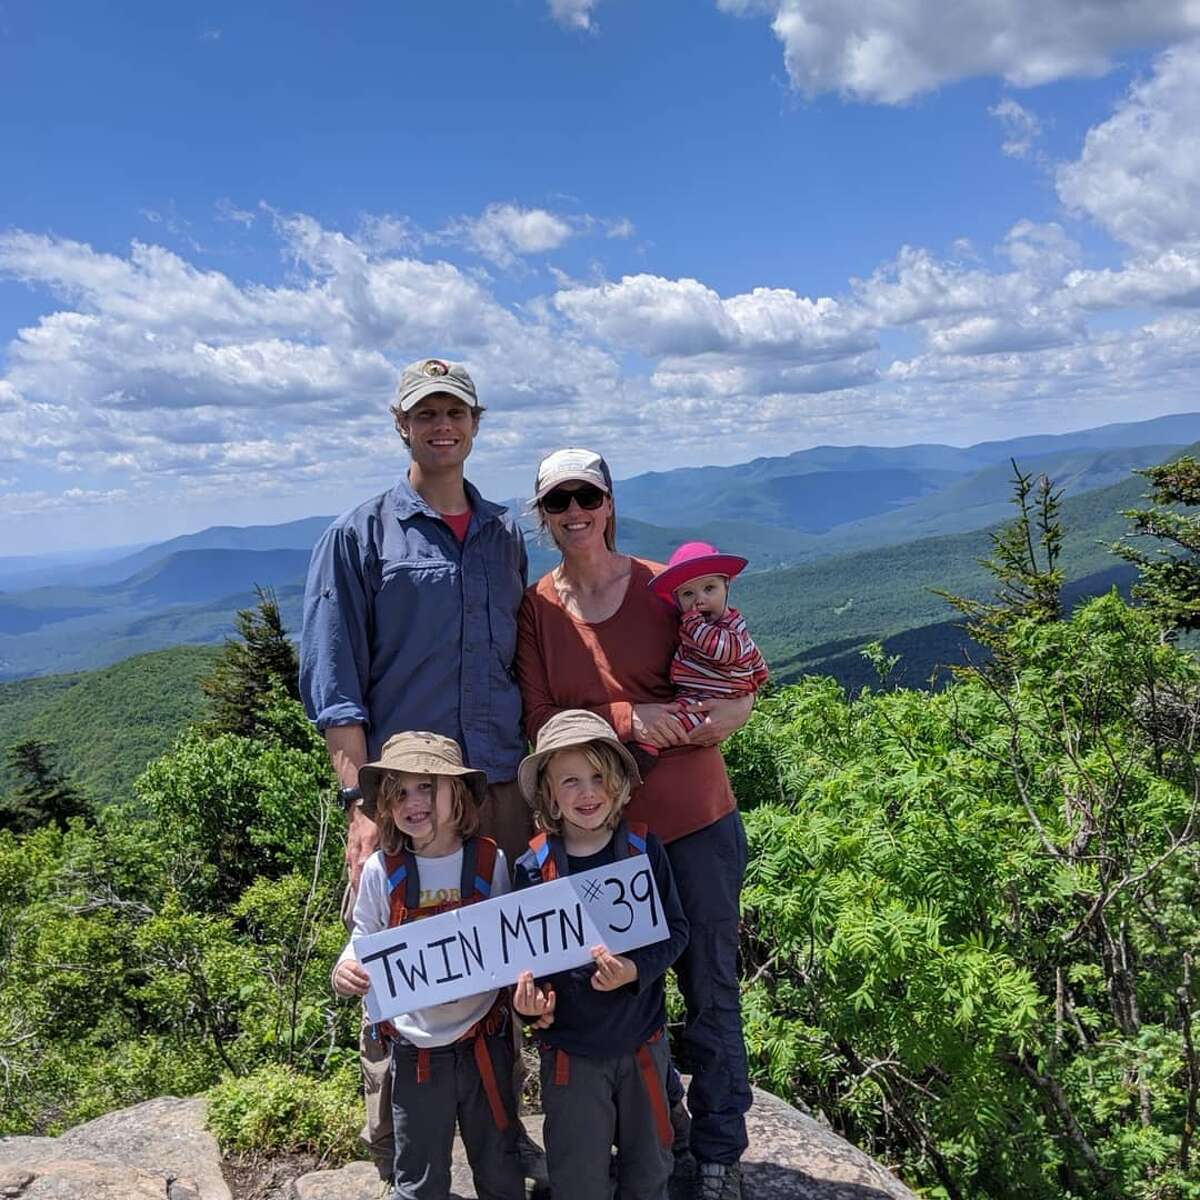 Last year, the Kralick family hiked the highest peaks of the Catskills in five months when their twin boys were four. Their baby girl rode the whole way on her mom's back. The family then summited the same peaks in winter, minus the baby in tough conditions, as they prepared to finish climbing the 46 highest Adirondacks peaks by this June. Photo: @mountainmama_amk